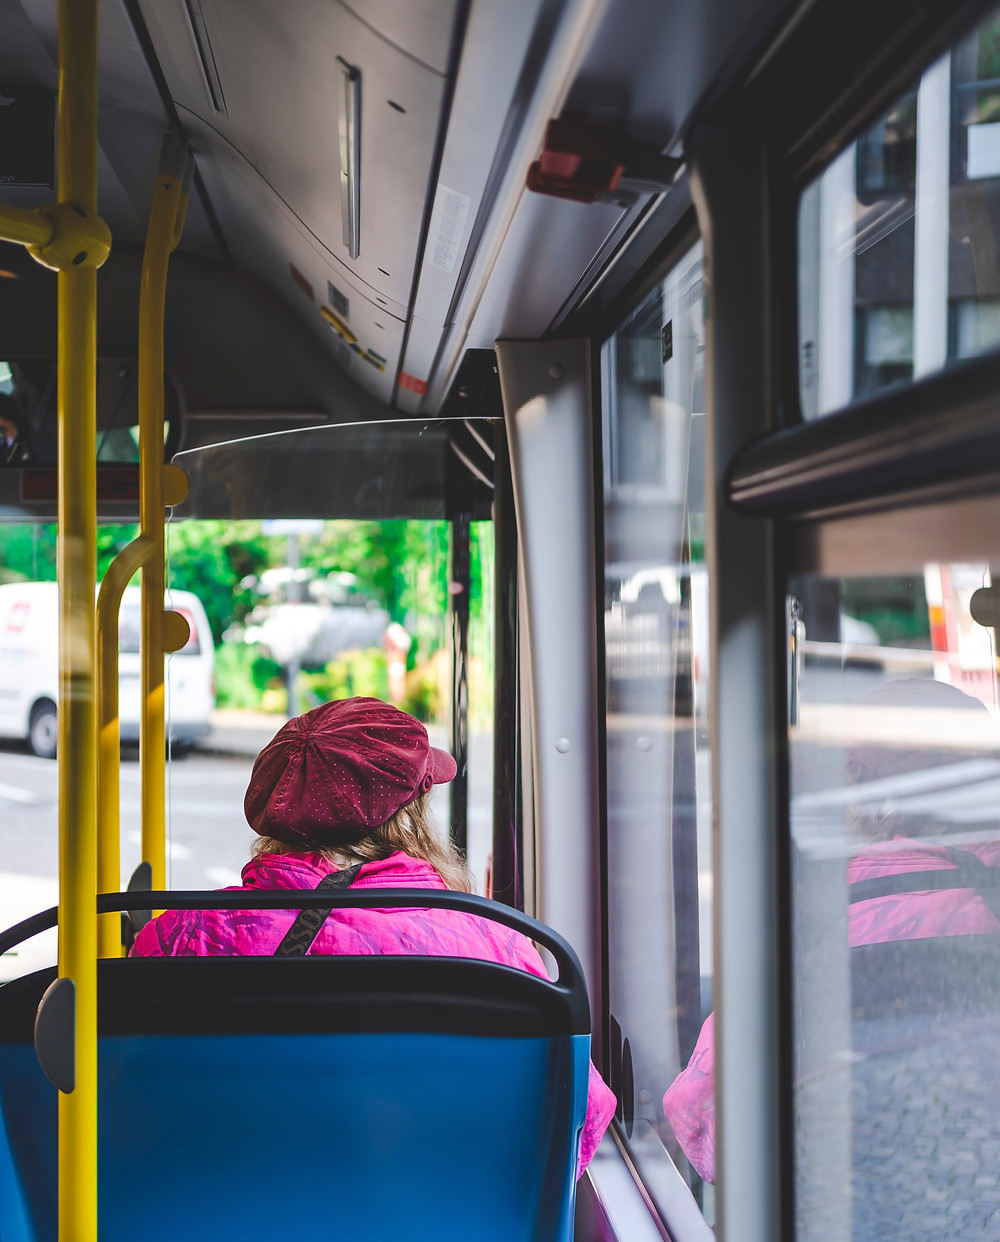 View of the back of a lady sat on the bus, wearing a cap and pink jacket looking out the window.